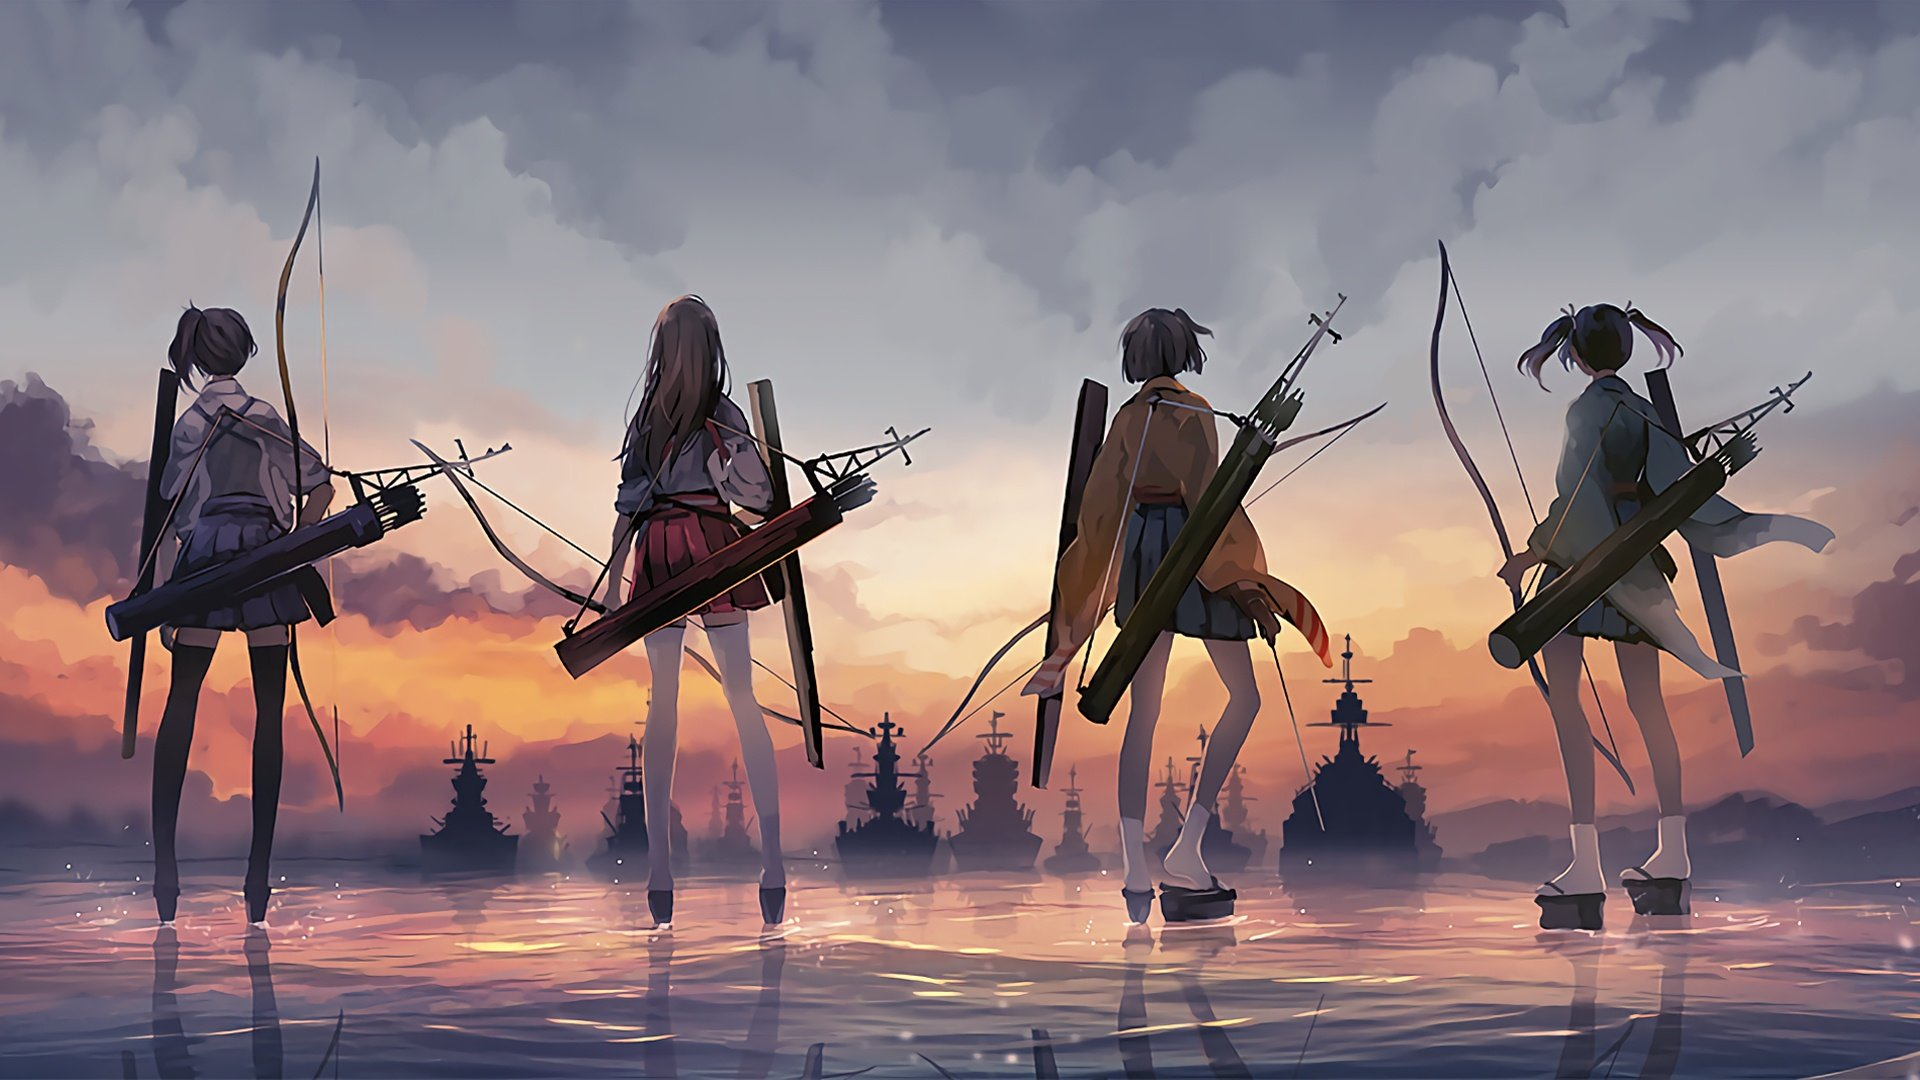 Awesome Kantai Collection wallpaper ID330857 for hd 1920x1080